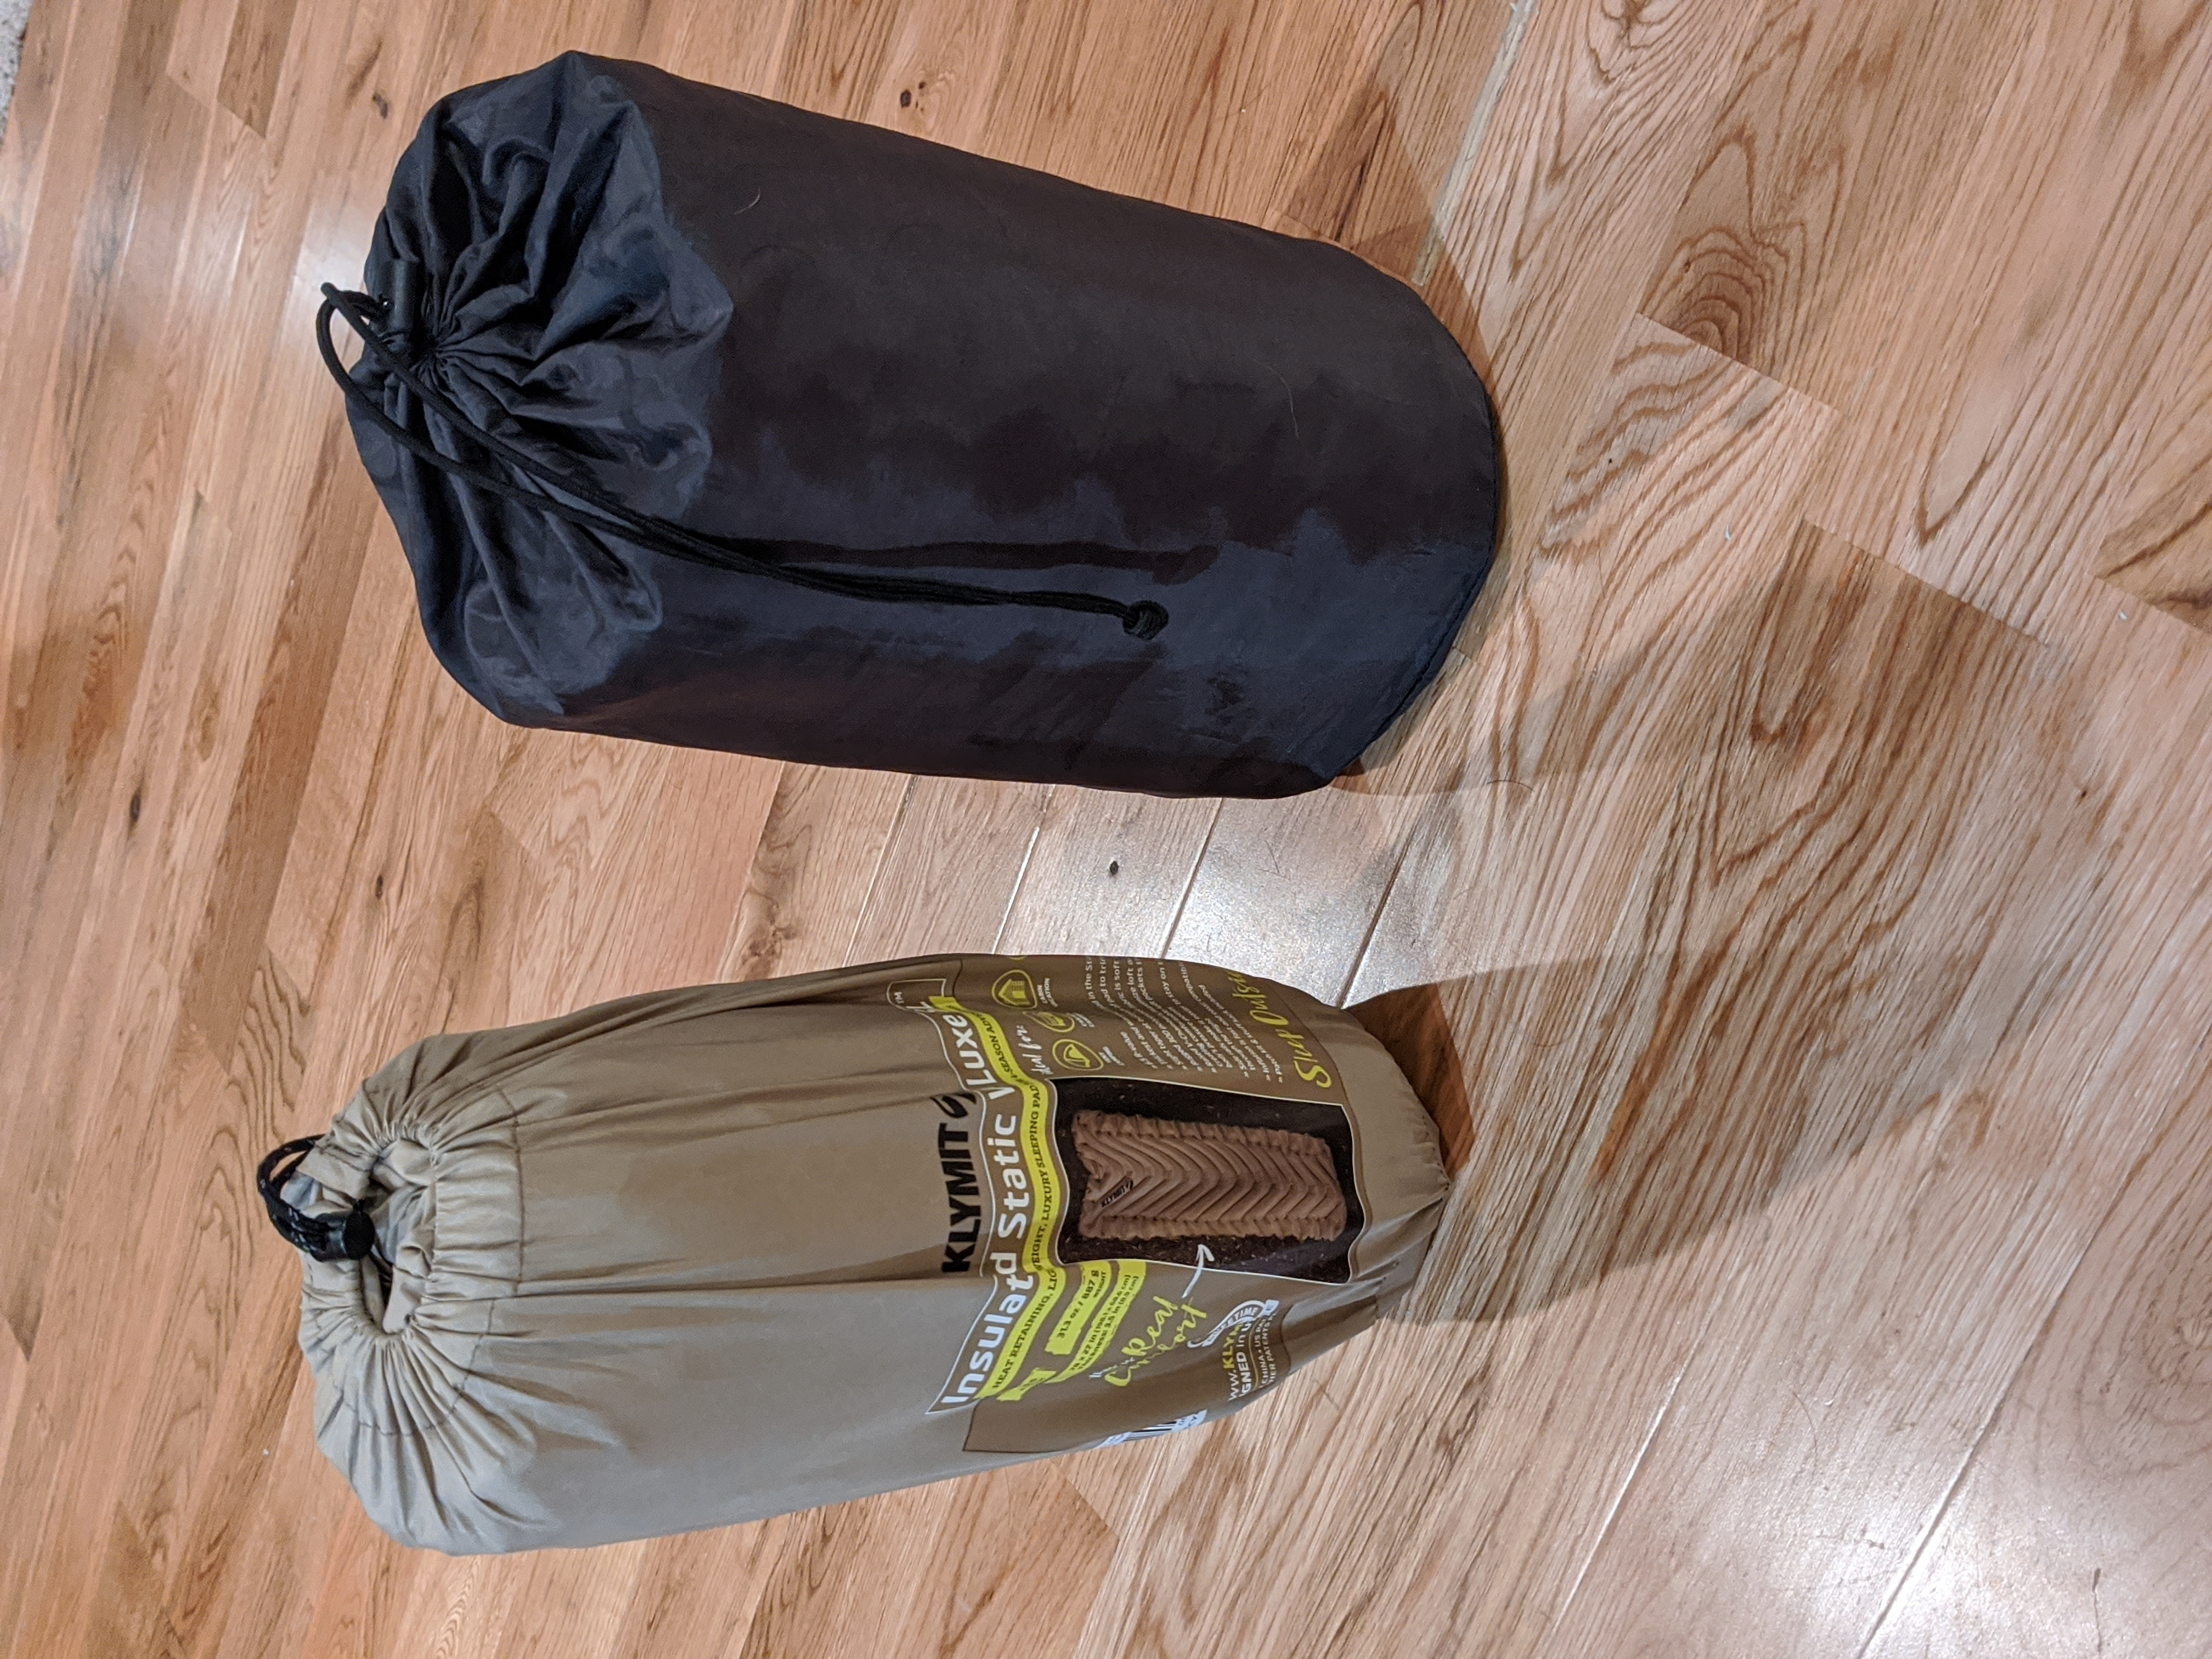 The Klymit Static V Luxe packs down to roughly the same form factor if a little smaller than the Thermarest.